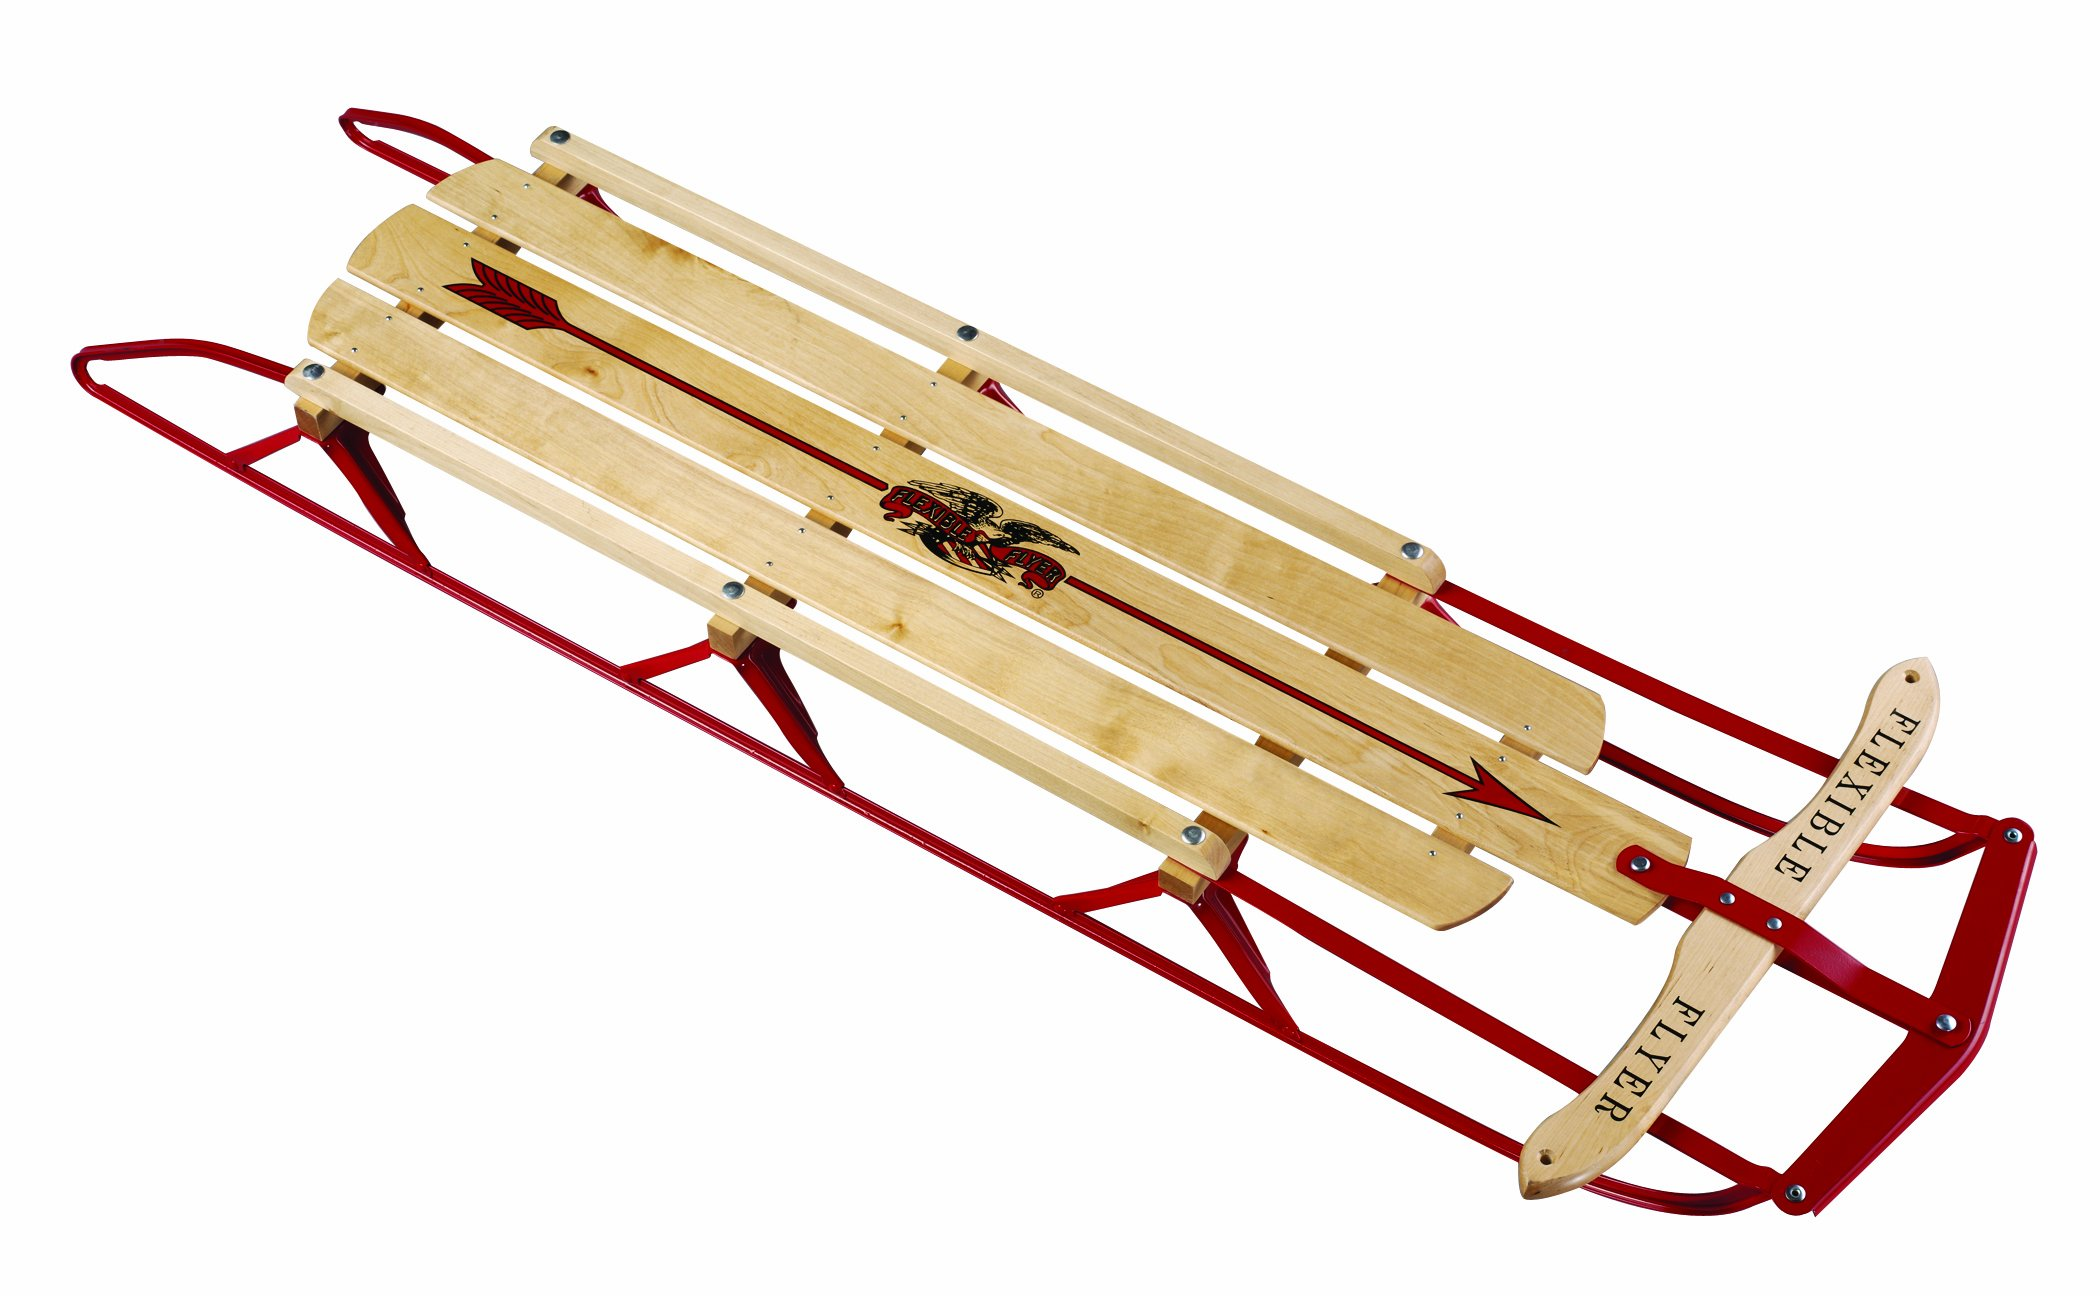 Paricon 54-Inch Flexible Flyer Sled by Paricon